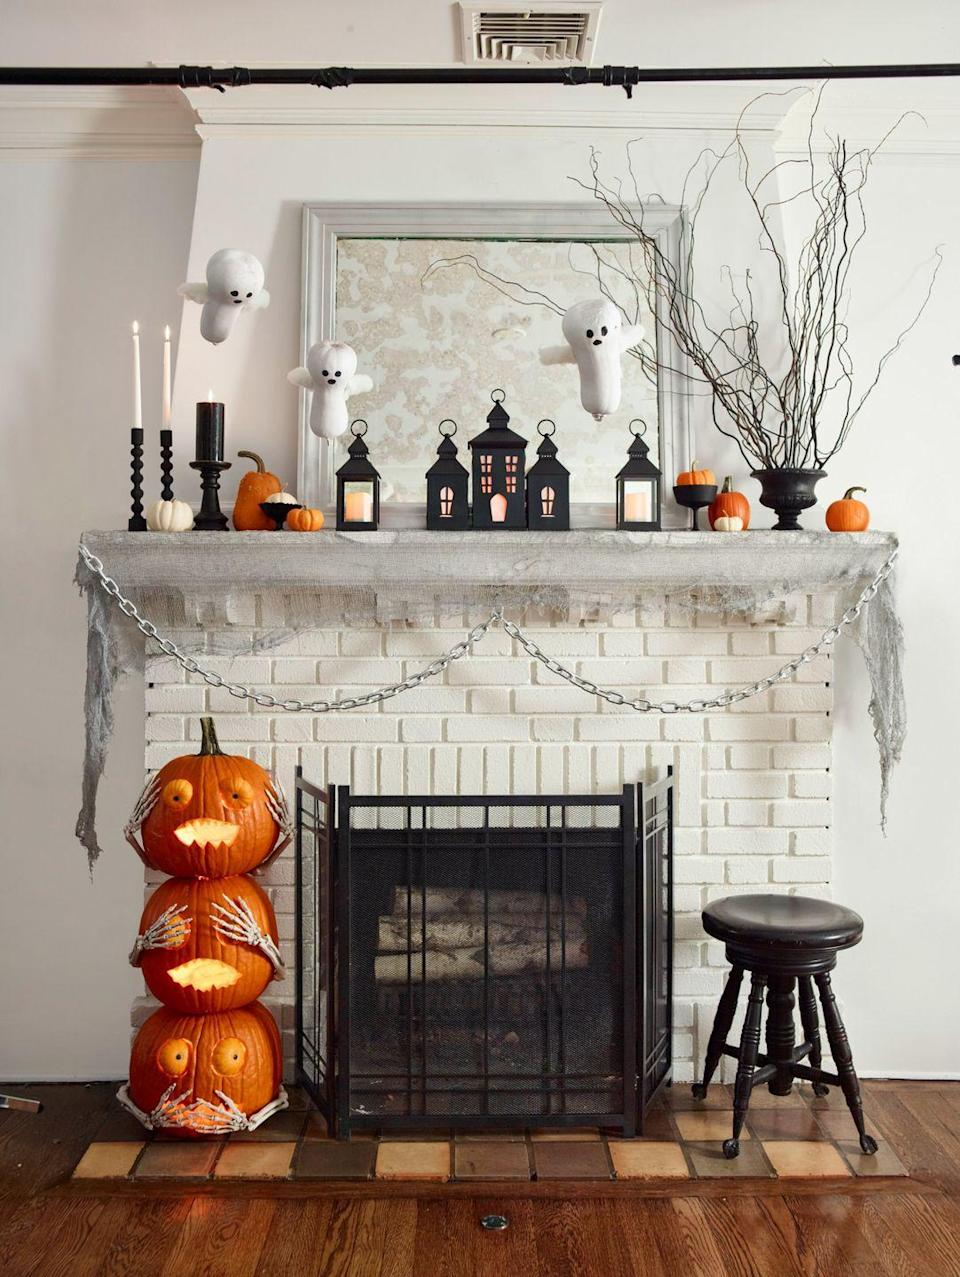 """<p>What you don't know can't hurt you, right? This stacked-pumpkin statue — complete with Jack Be Little eyes and faux-skeleton arms — denies any wrongdoing around the house. </p><p><strong>What You'll Need:</strong> <a href=""""https://www.amazon.com/Skeleton-Hands-Stakes-Halloween-Decor/dp/B00LW34IH0?ref_=fsclp_pl_dp_2&tag=syn-yahoo-20&ascsubtag=%5Bartid%7C10070.g.1279%5Bsrc%7Cyahoo-us"""" rel=""""nofollow noopener"""" target=""""_blank"""" data-ylk=""""slk:Skeleton arms"""" class=""""link rapid-noclick-resp"""">Skeleton arms</a> ($8, Amazon); <a href=""""https://www.amazon.com/Ehdching-Artificial-Realistic-Halloween-Decoration/dp/B01JLRL63M?ref_=fsclp_pl_dp_1&tag=syn-yahoo-20&ascsubtag=%5Bartid%7C10070.g.1279%5Bsrc%7Cyahoo-us"""" rel=""""nofollow noopener"""" target=""""_blank"""" data-ylk=""""slk:mini pumpkins"""" class=""""link rapid-noclick-resp"""">mini pumpkins</a> ($13, Amazon)</p>"""